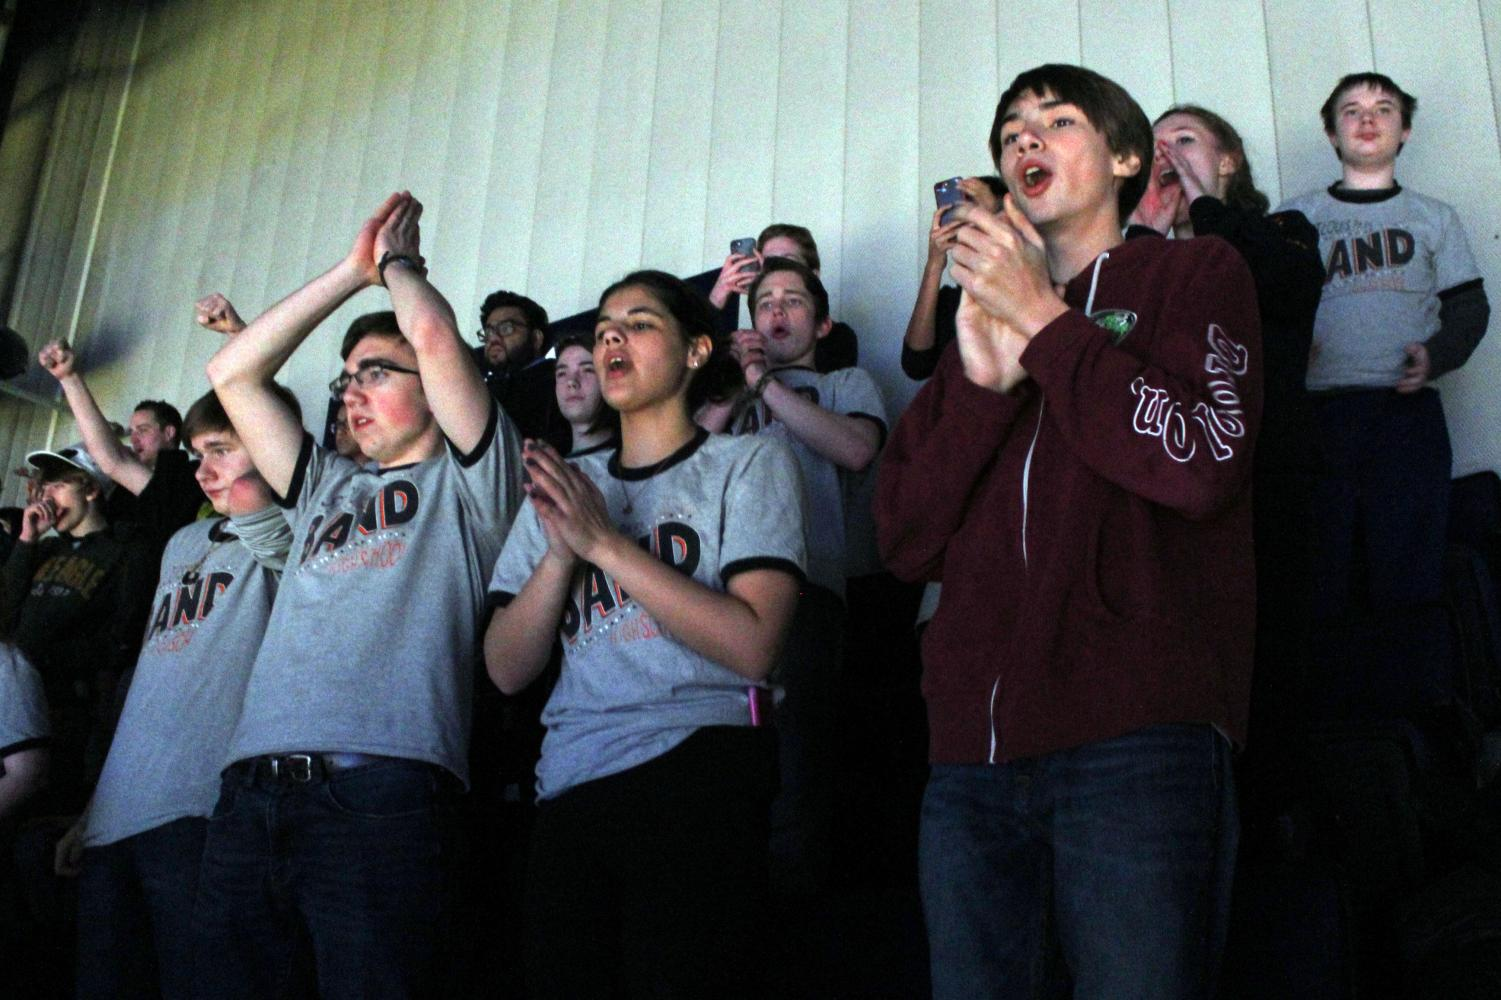 Freshman Harris Keekley and juniors Shaqued Ben-Harush and Brandon Wetterlin cheer at the Timberwolves game Jan. 11. About 50 students from Park bands performed before the game and then attended the game afterwards.